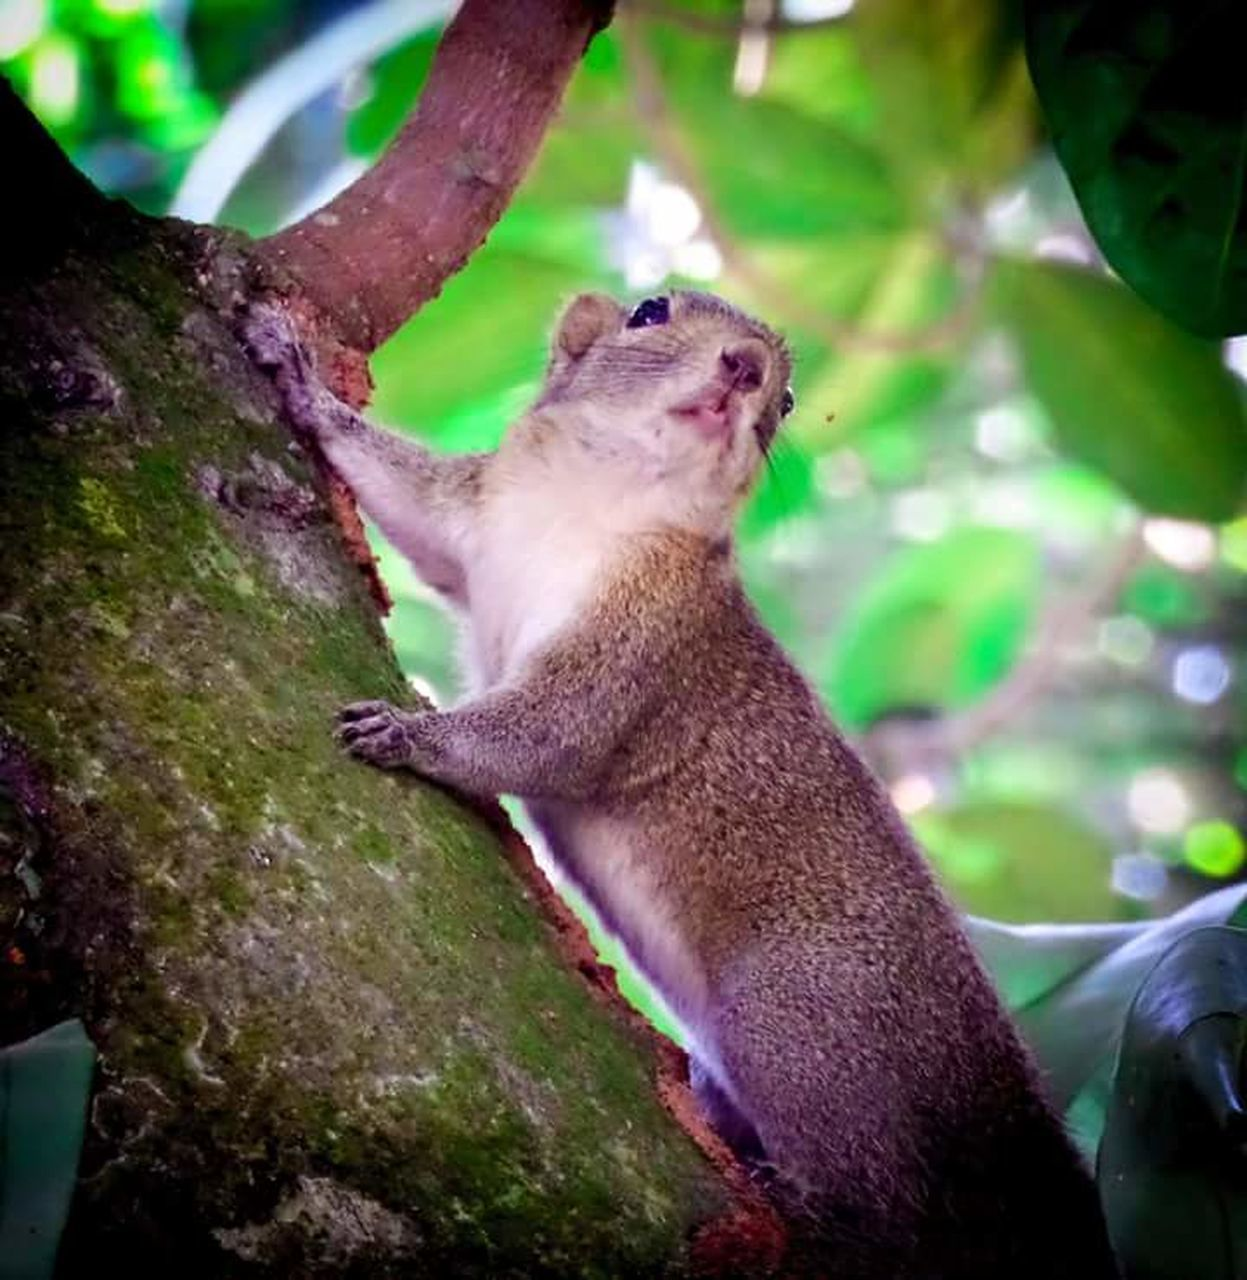 animals in the wild, animal themes, one animal, no people, day, tree, mammal, outdoors, nature, animal wildlife, squirrel, sitting, close-up, koala